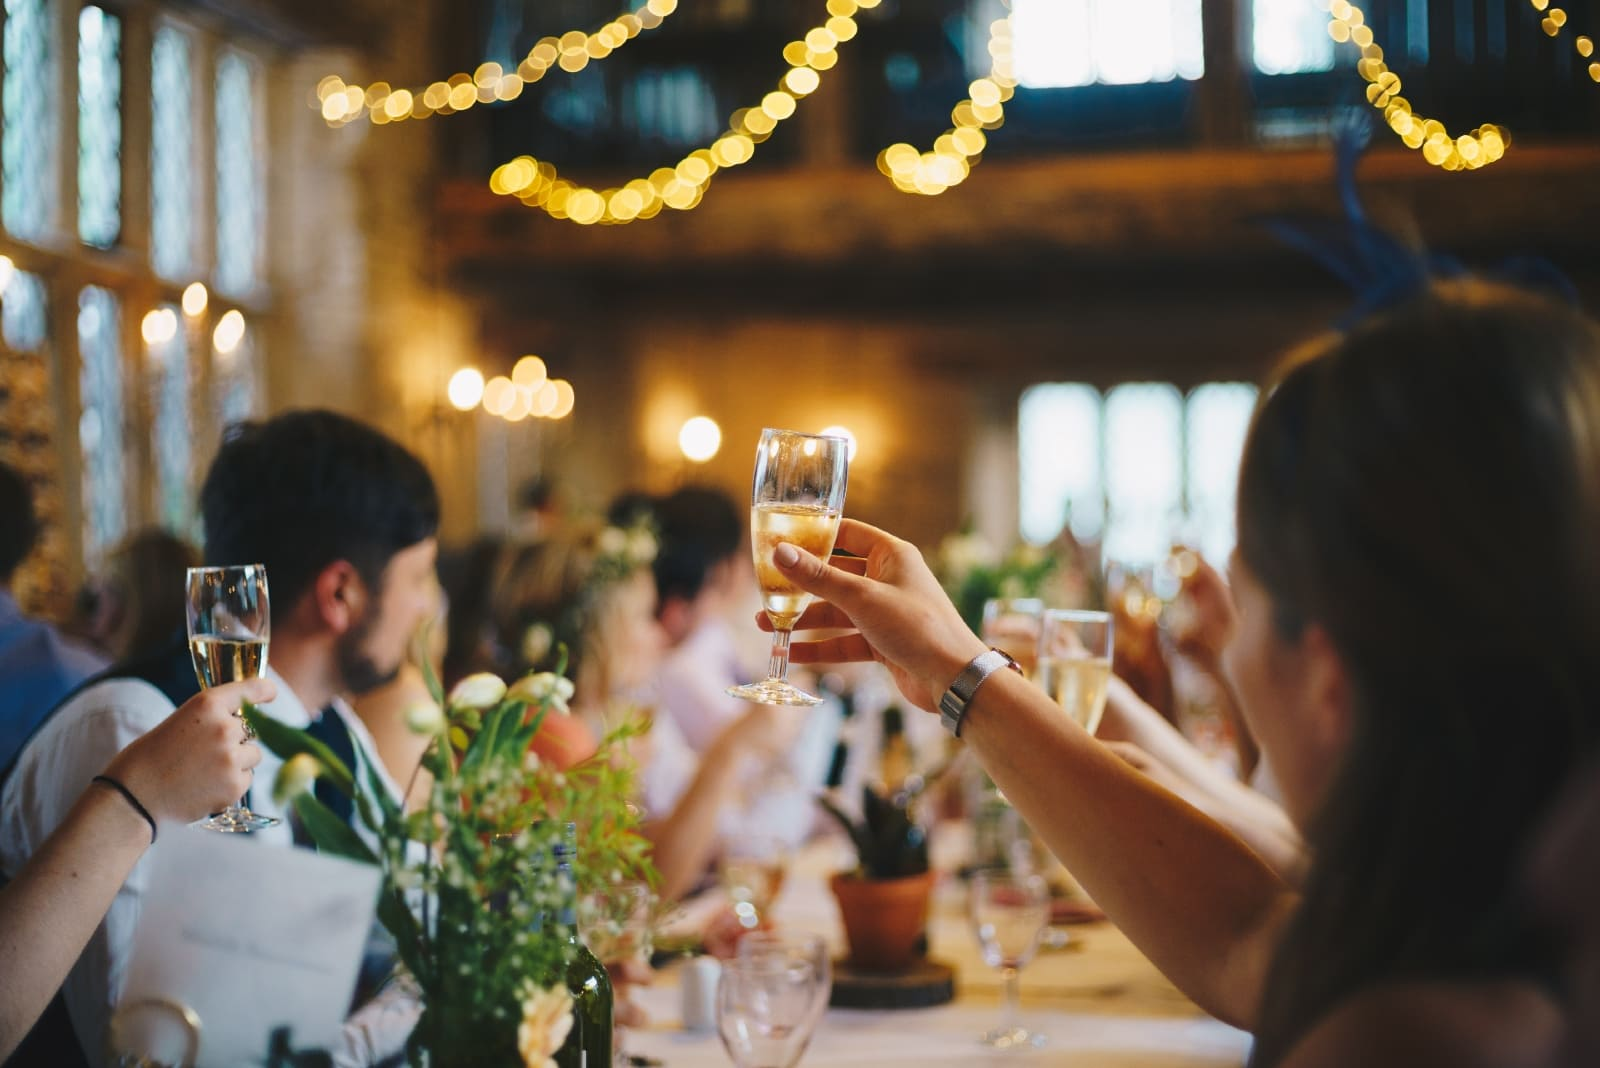 people raising wine glasses while sitting at table